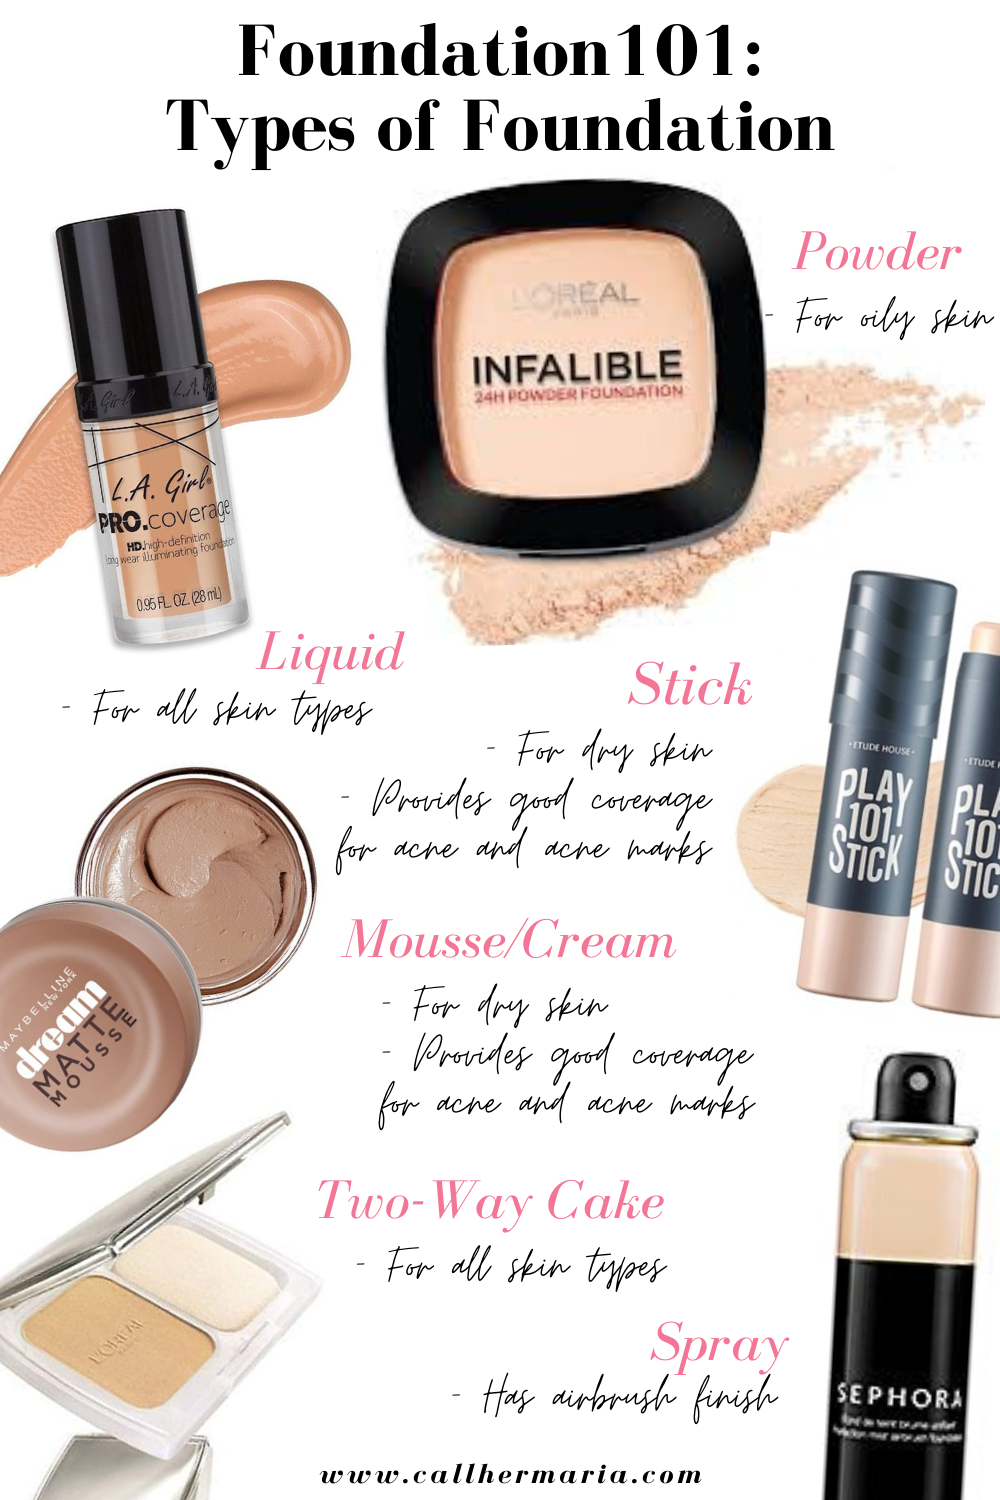 Beginner Makeup: How to Find the Perfect Foundation For You